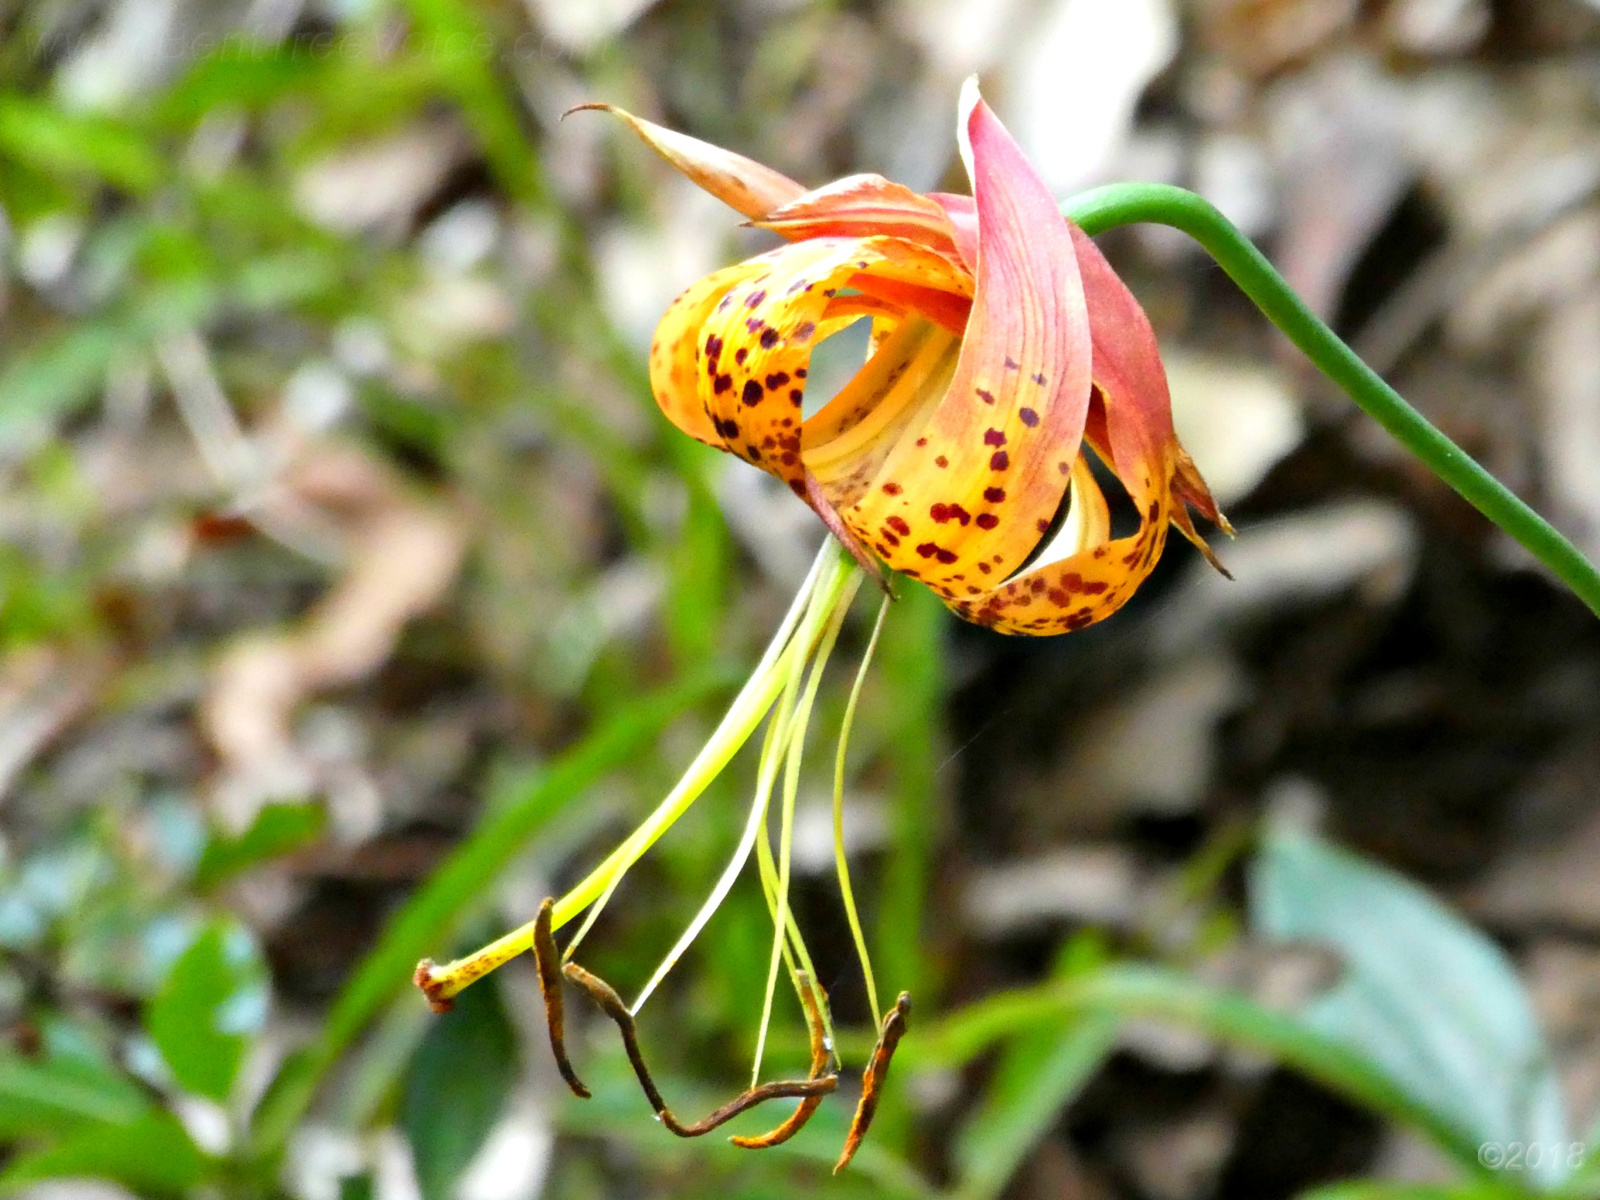 July 29, 2018 - Turk's Cap Lily in Bent Tree